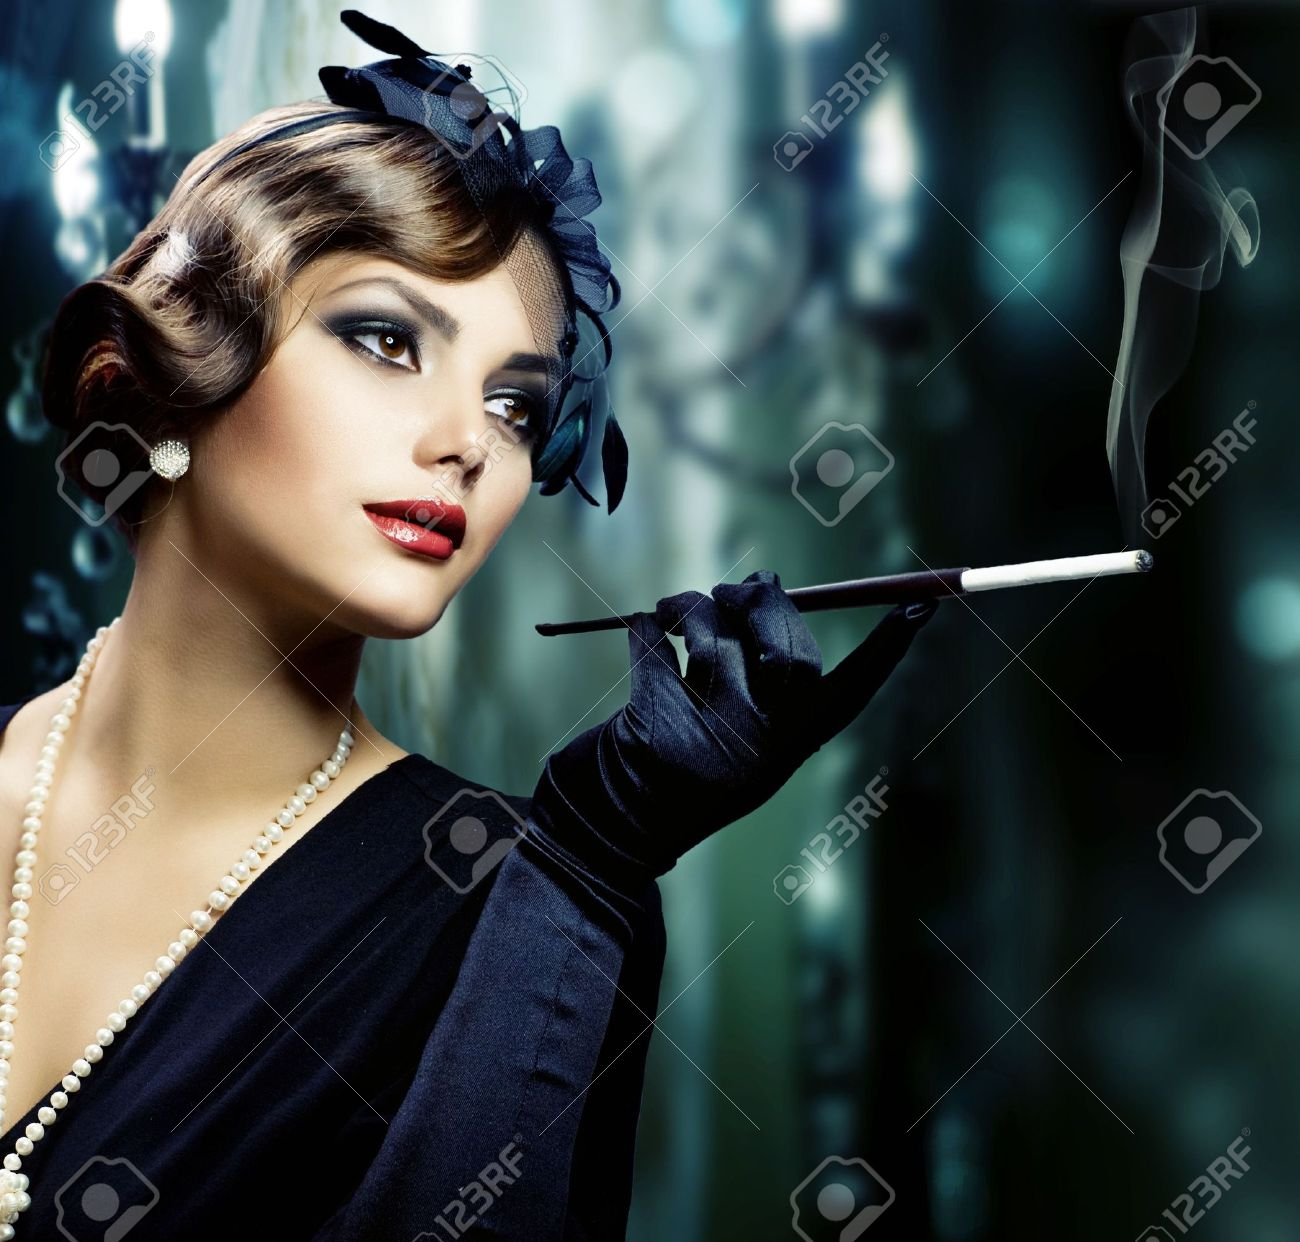 Vintage Portrait of Beautiful Young Woman.Retro Style Stock Photo - 8427633